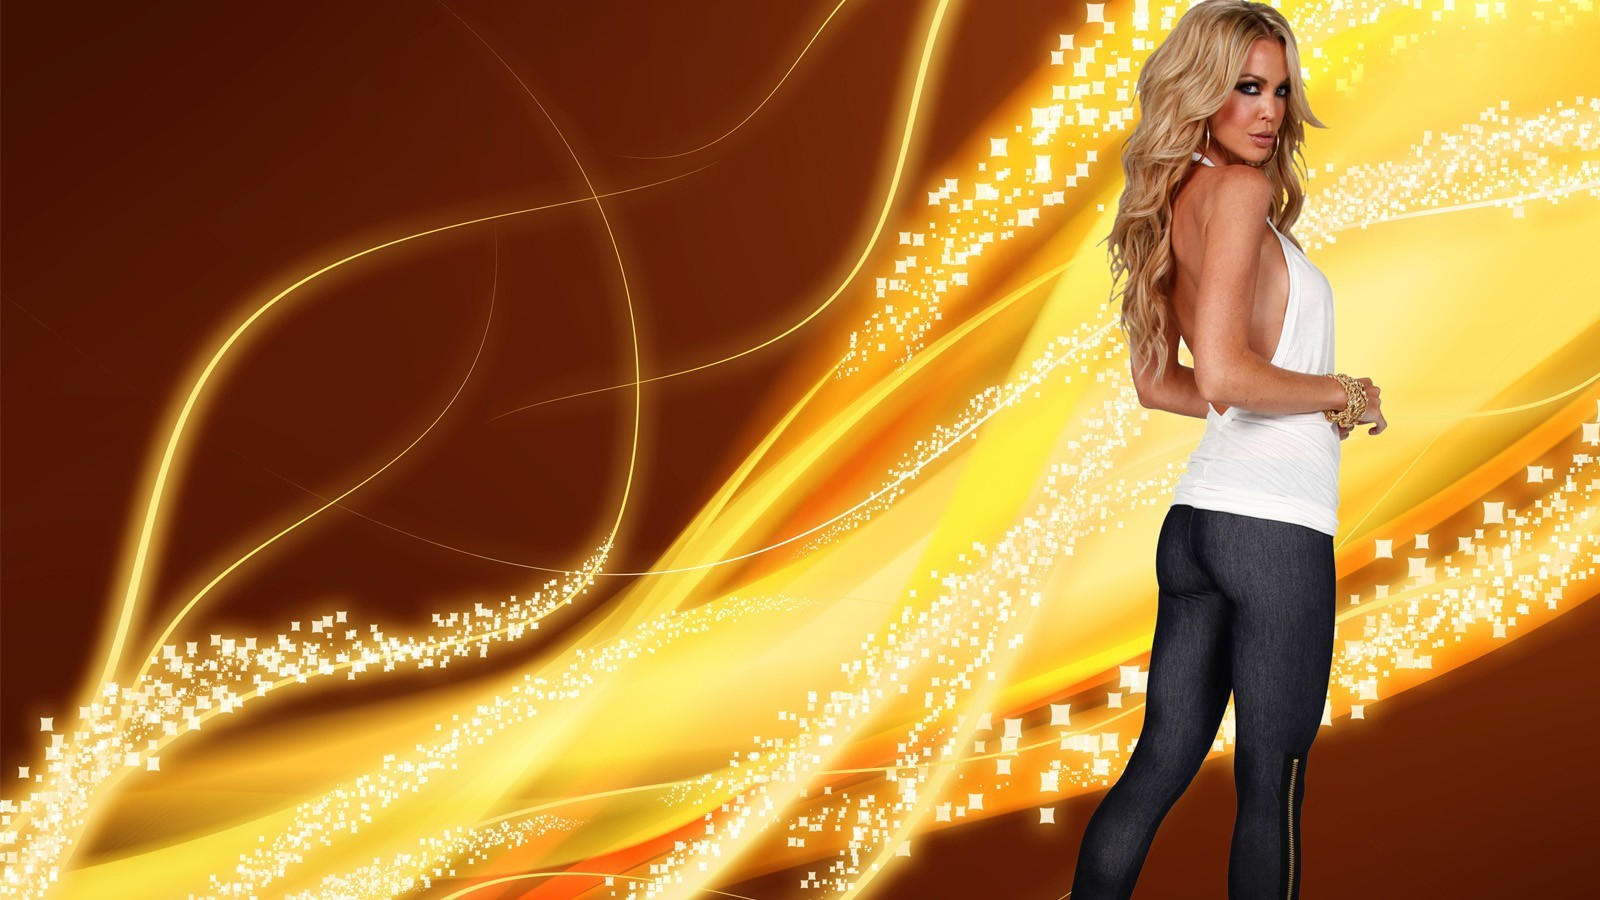 blondes woman abstract jeans HD Wallpaper